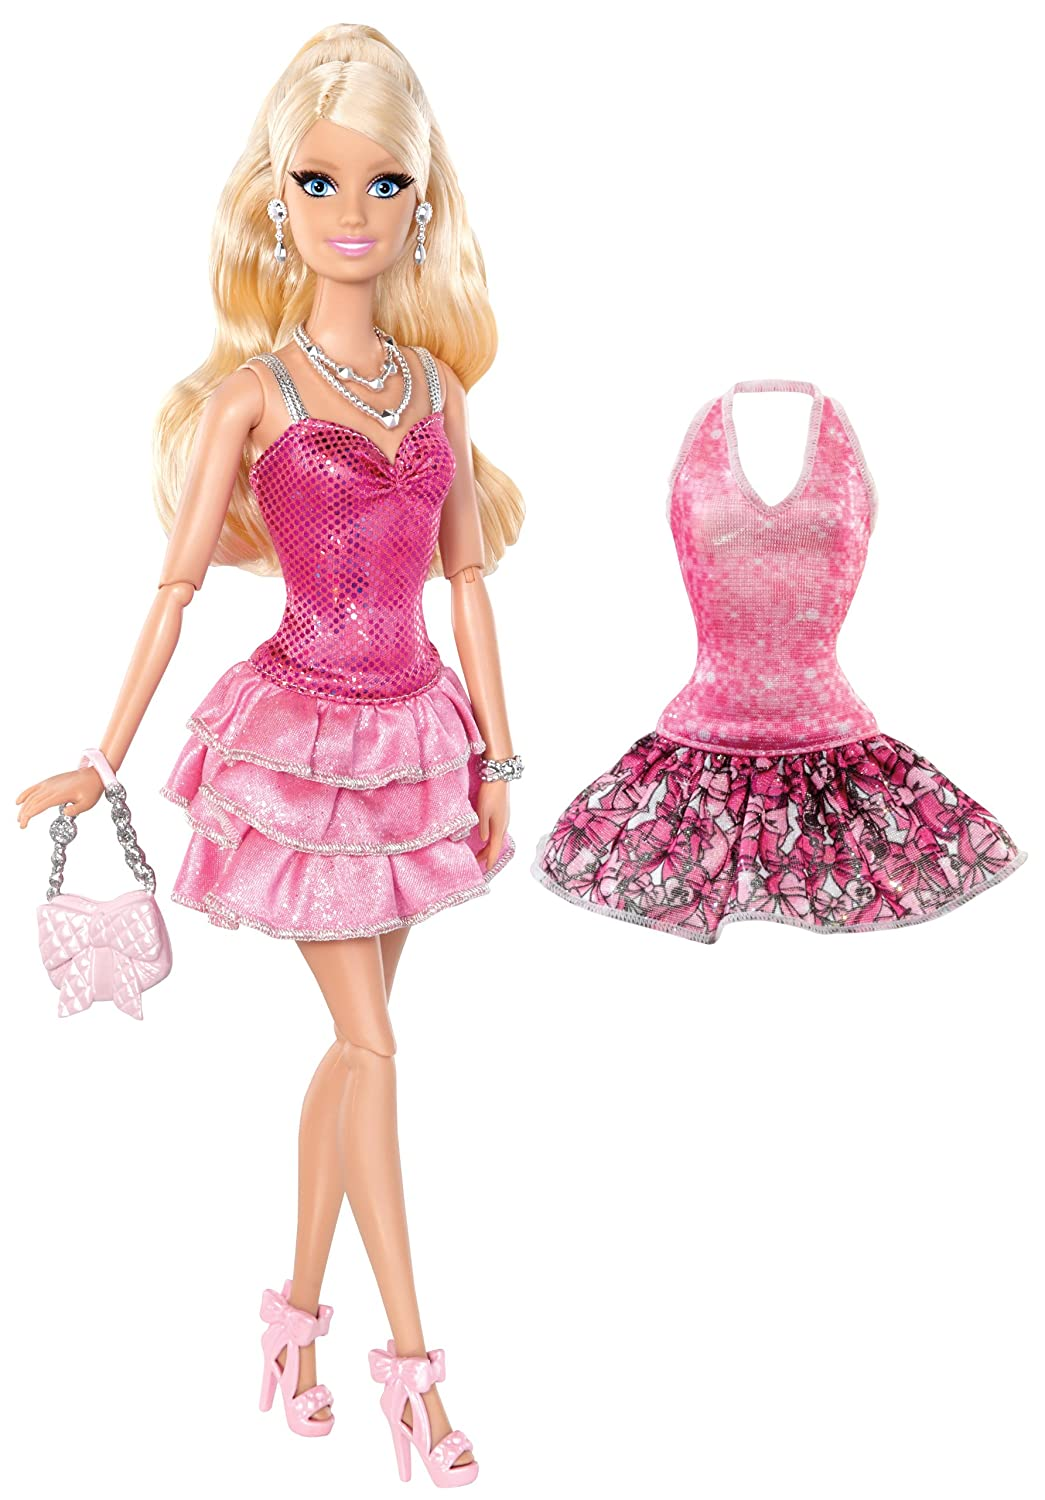 Save 40% on Select Barbie Dolls & Accessories